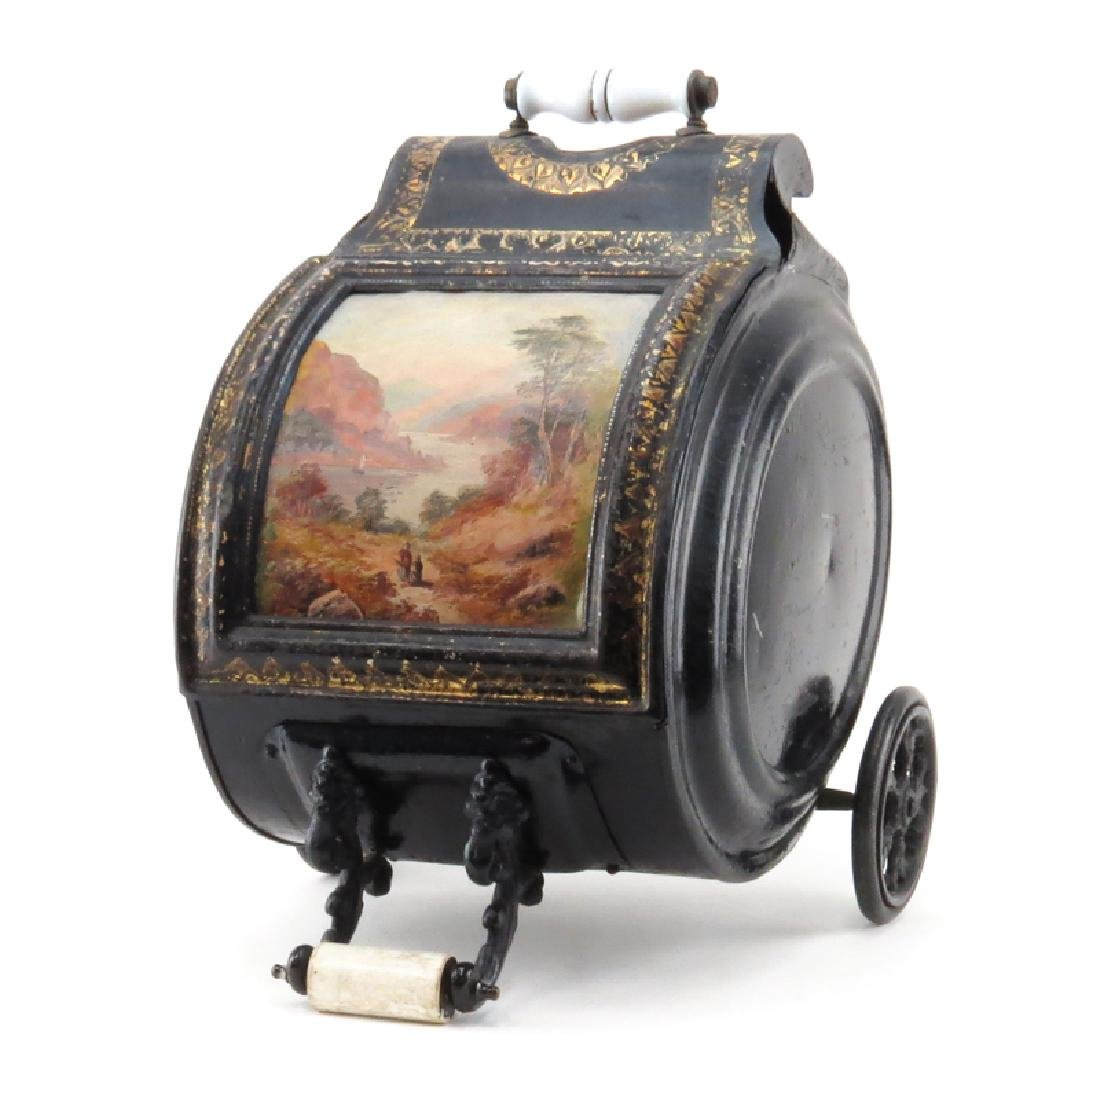 Antique Painted Tinware Coal Scuttle. Unsigned. Wear